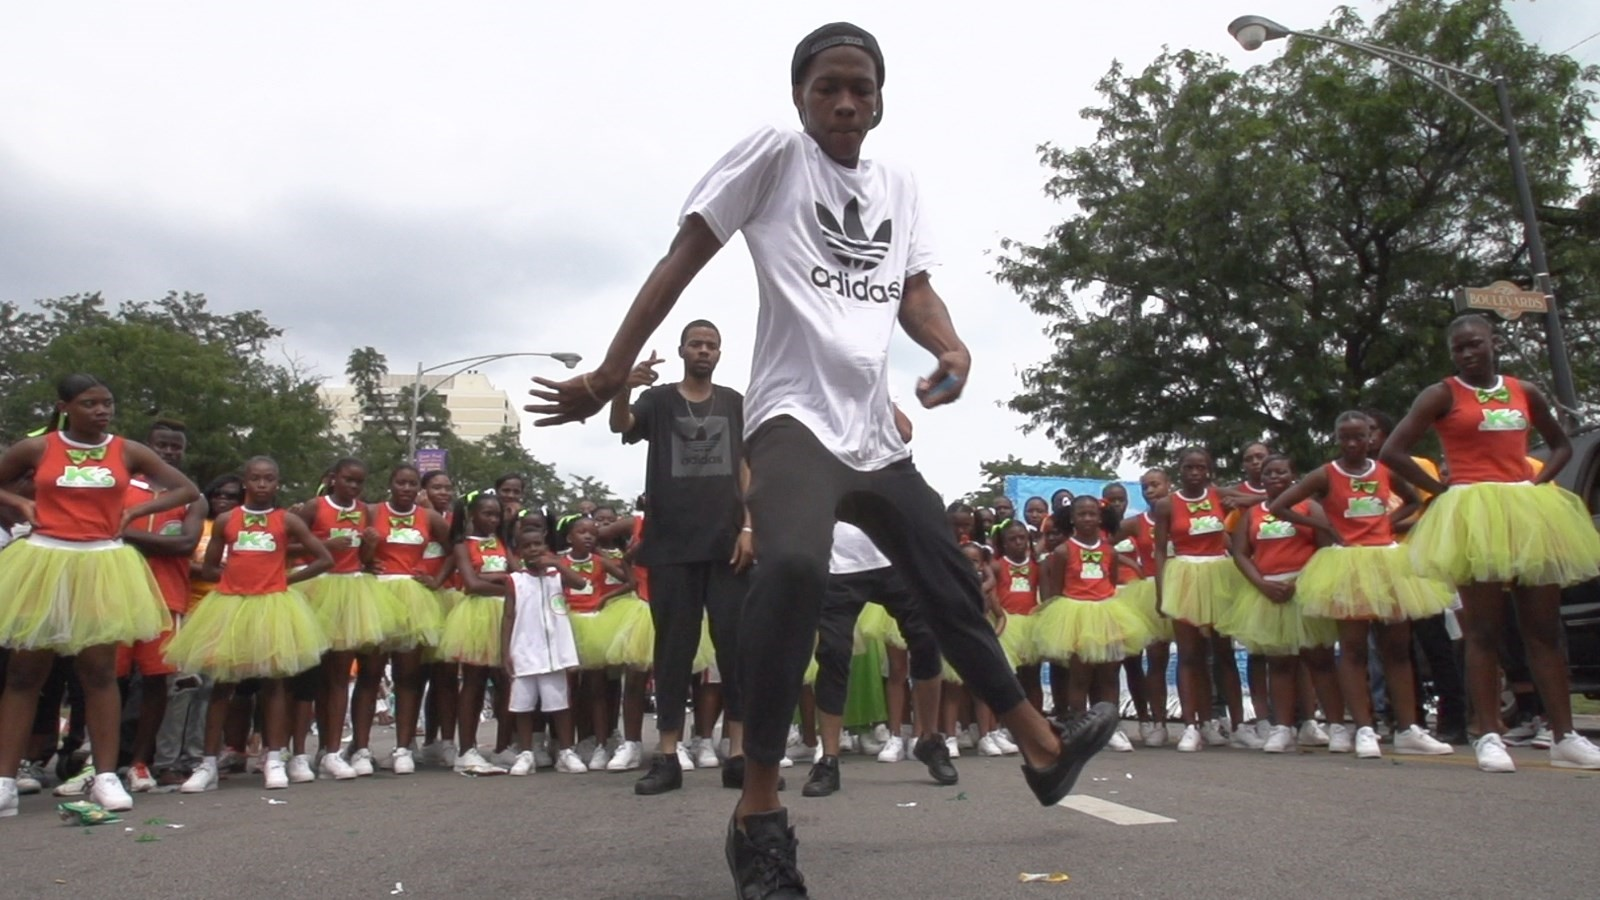 The Chicago footwork dancers at the dawn of a new era